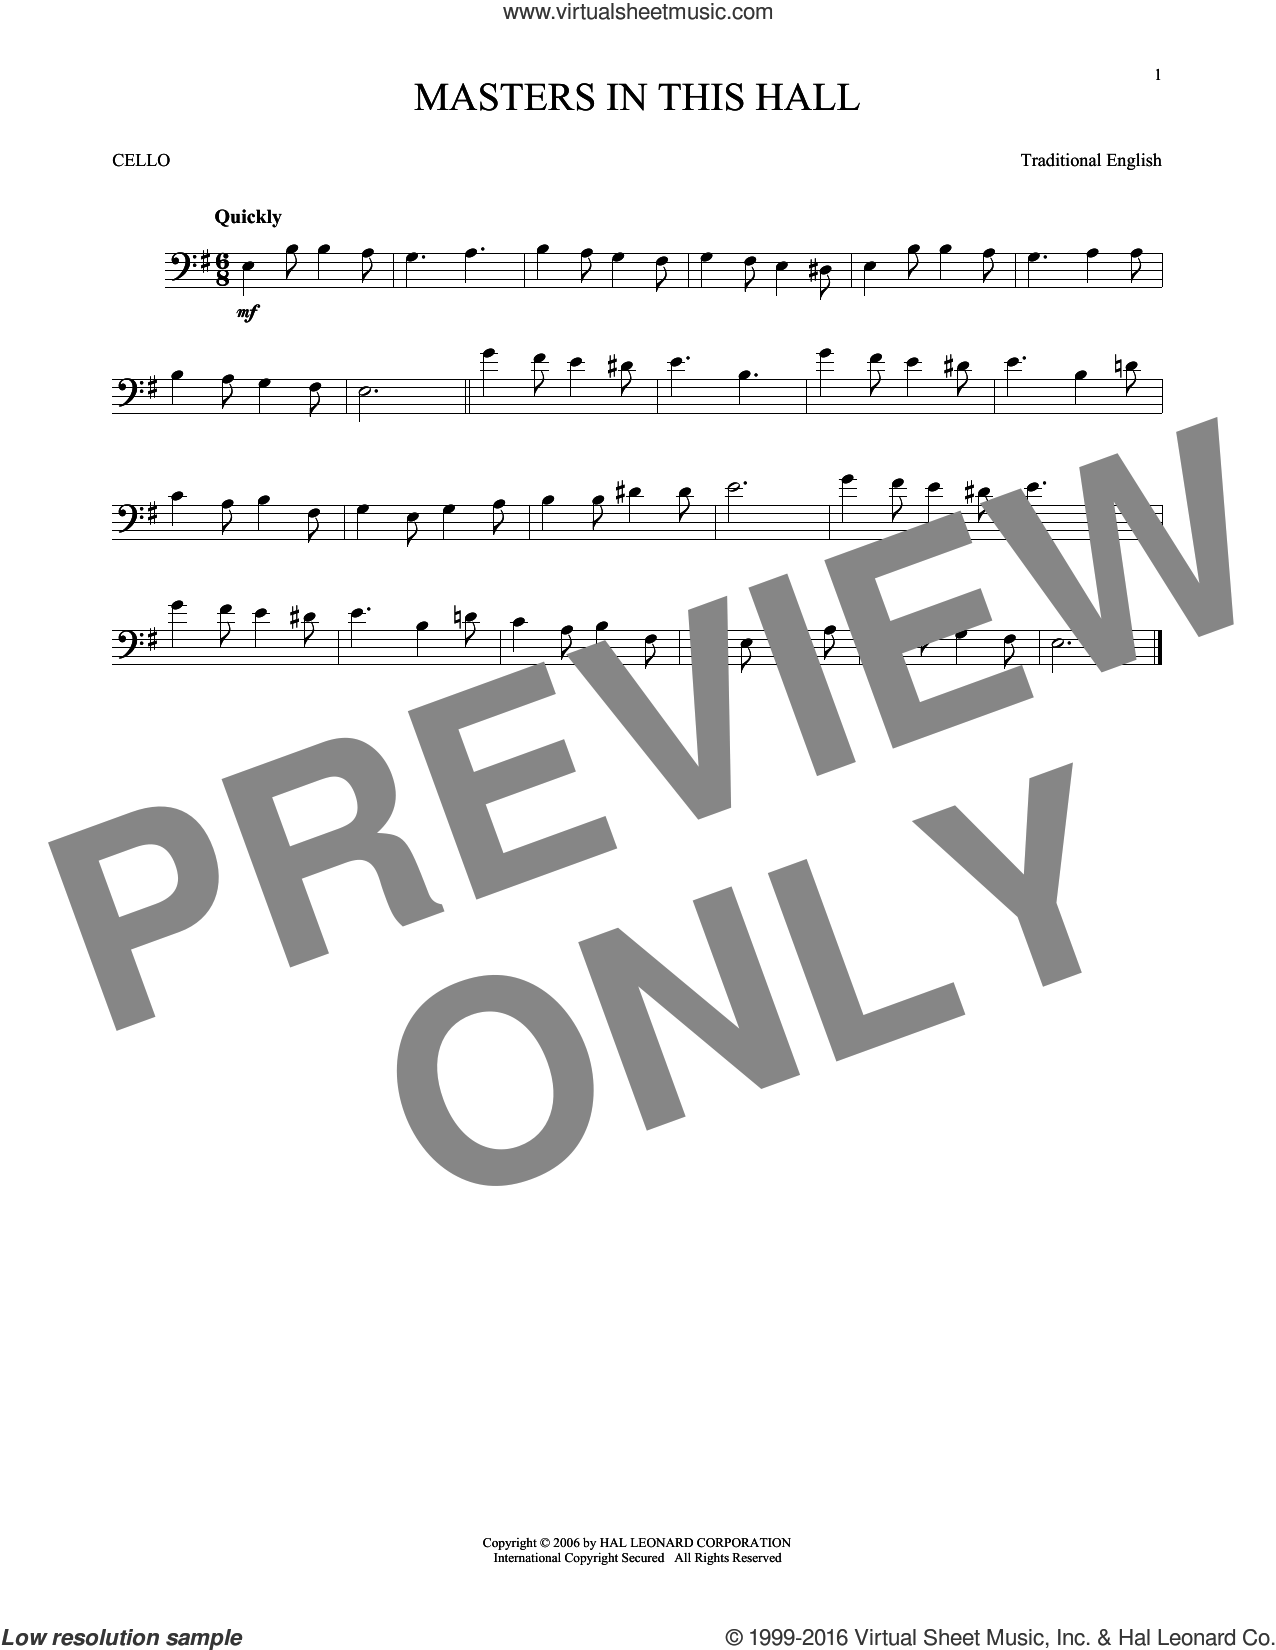 Masters In This Hall sheet music for cello solo, intermediate skill level